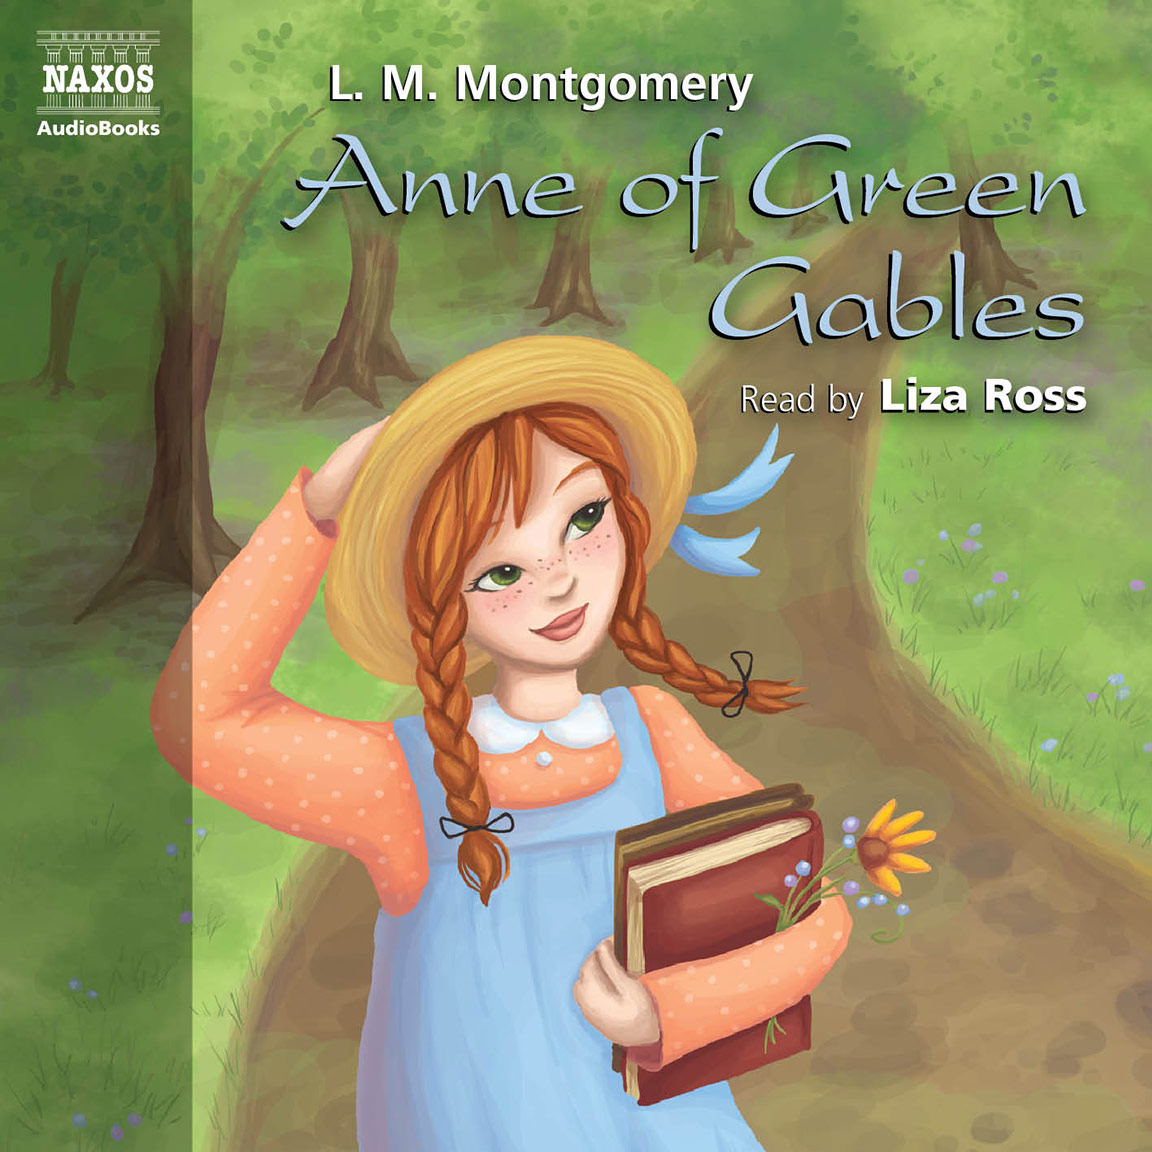 Anne of Green Gables (abridged)